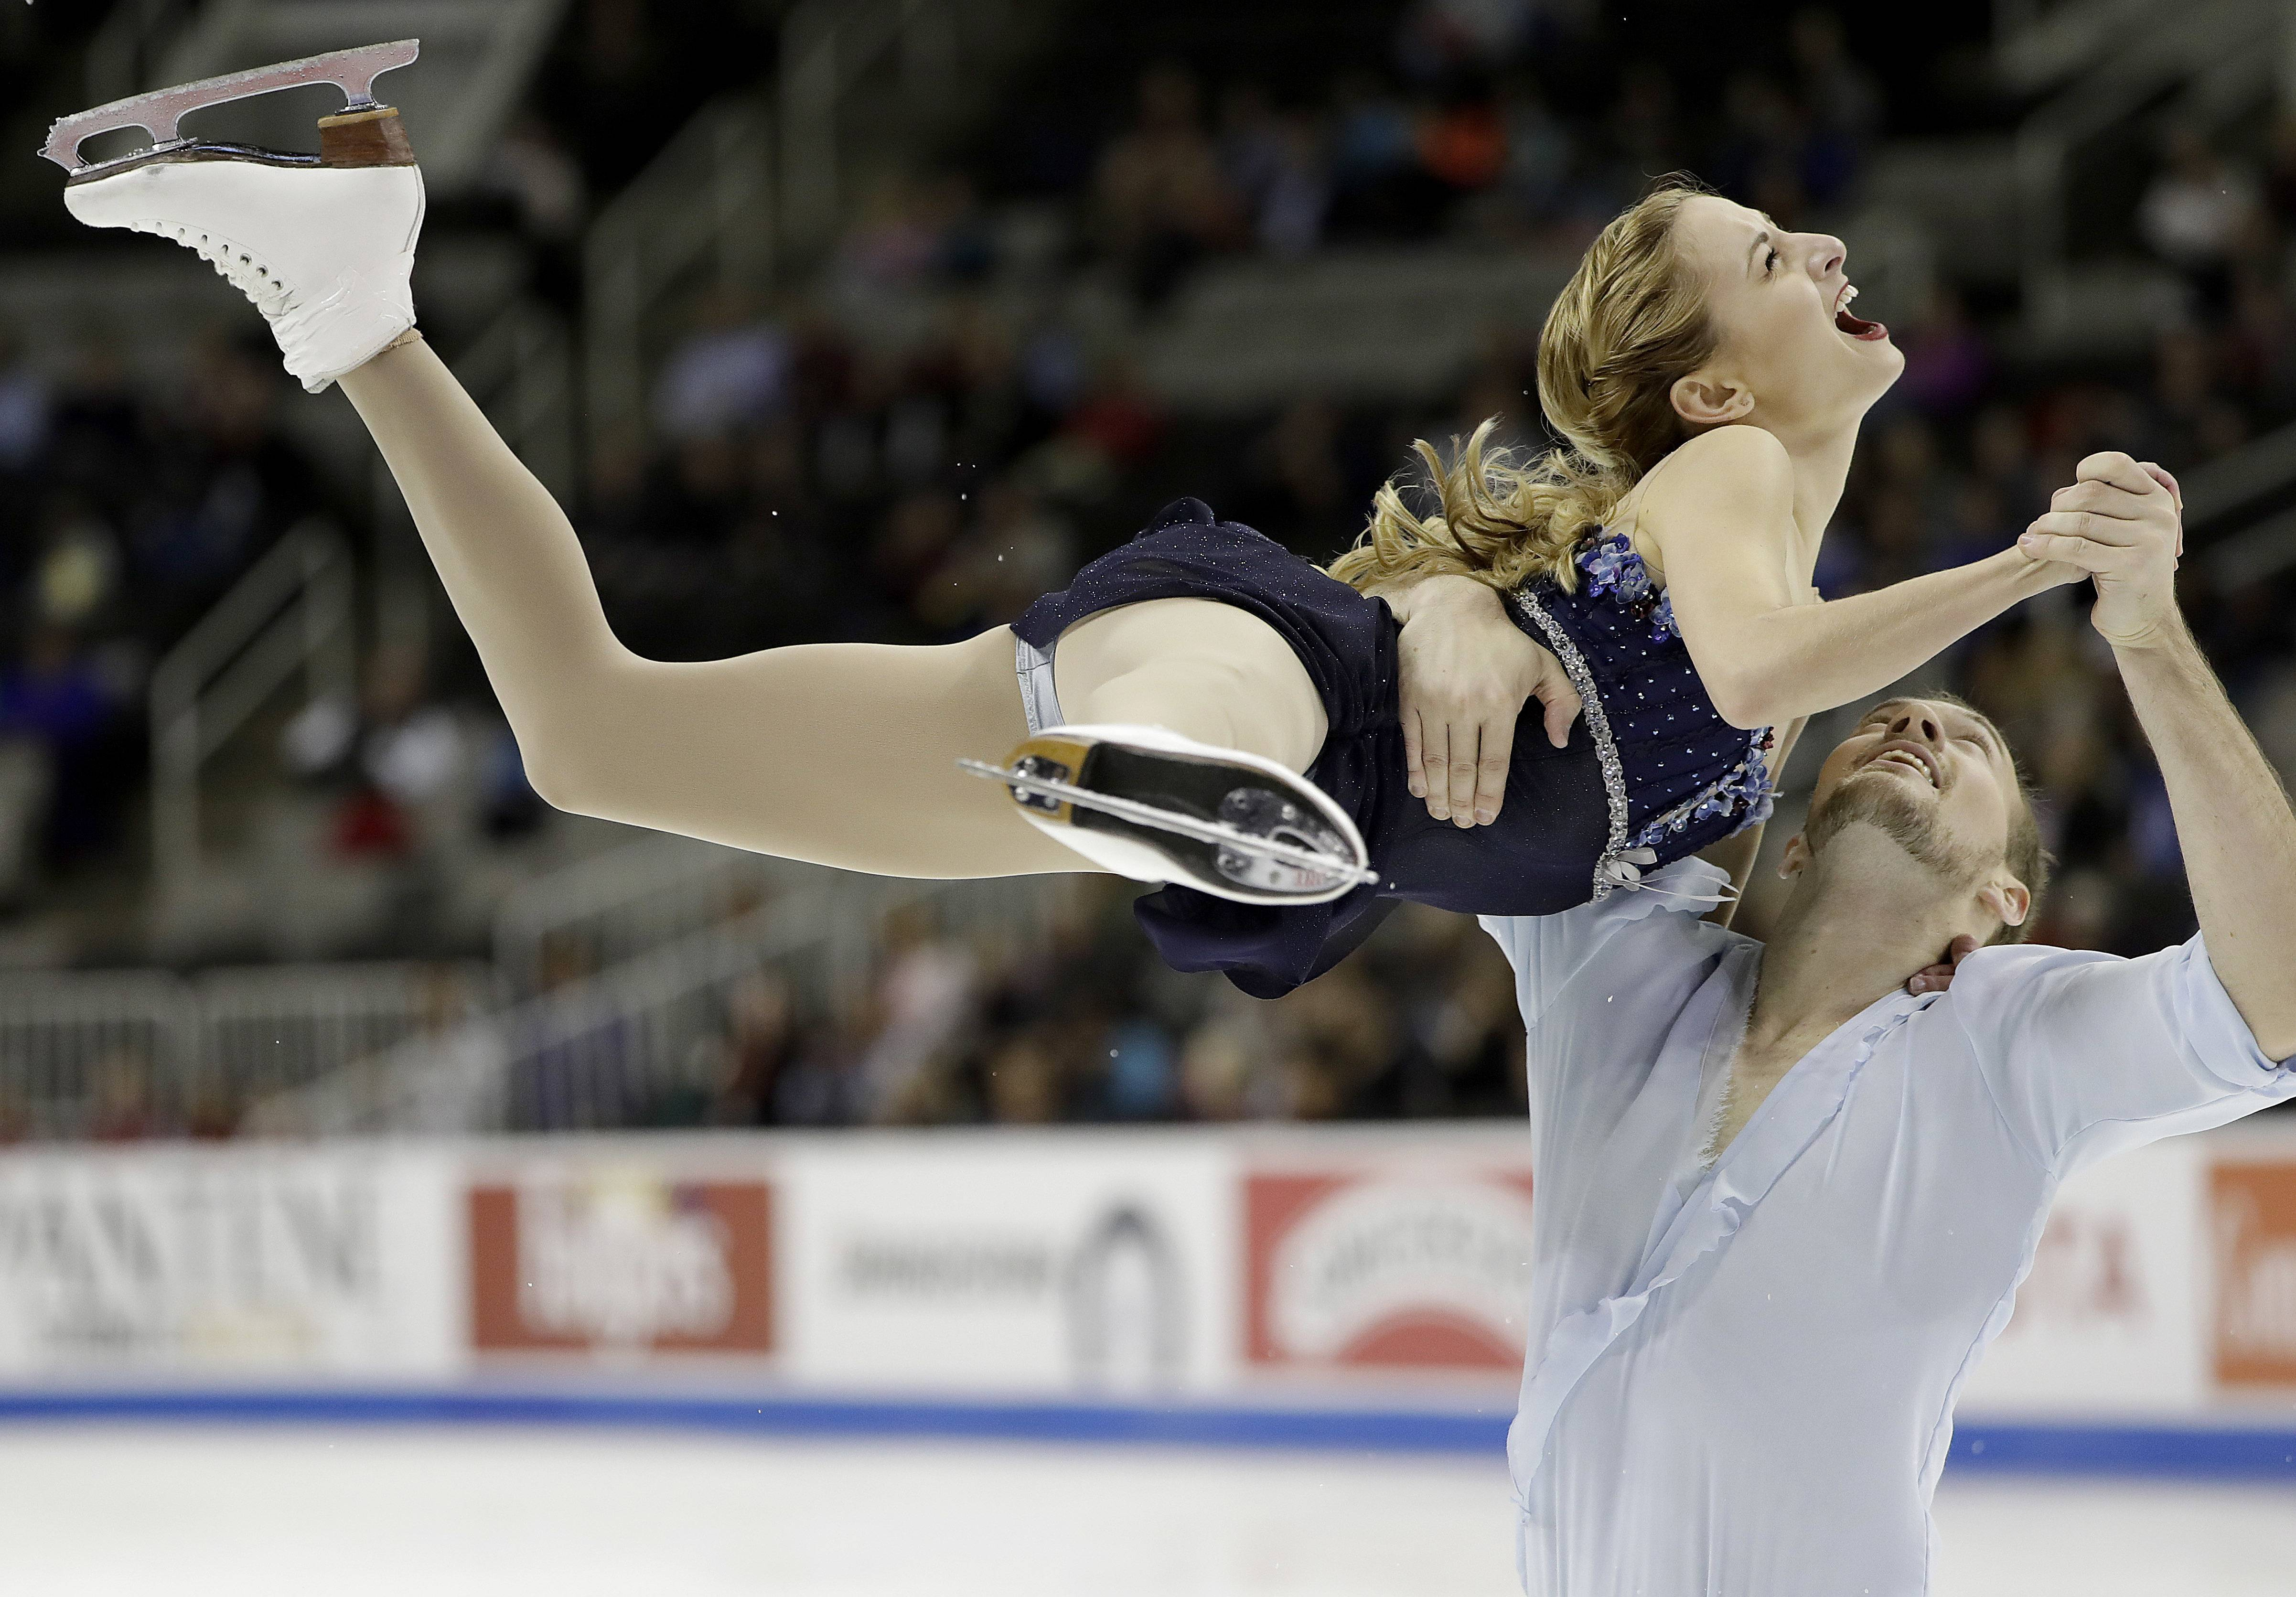 Tarah Kayne, top, and Danny O'Shea perform during the pairs short program at the U.S. Figure Skating Championships in San Jose, California, on Jan. 4. They placed second and are the first alternates at the Winter Olympics in Pyeongchang.